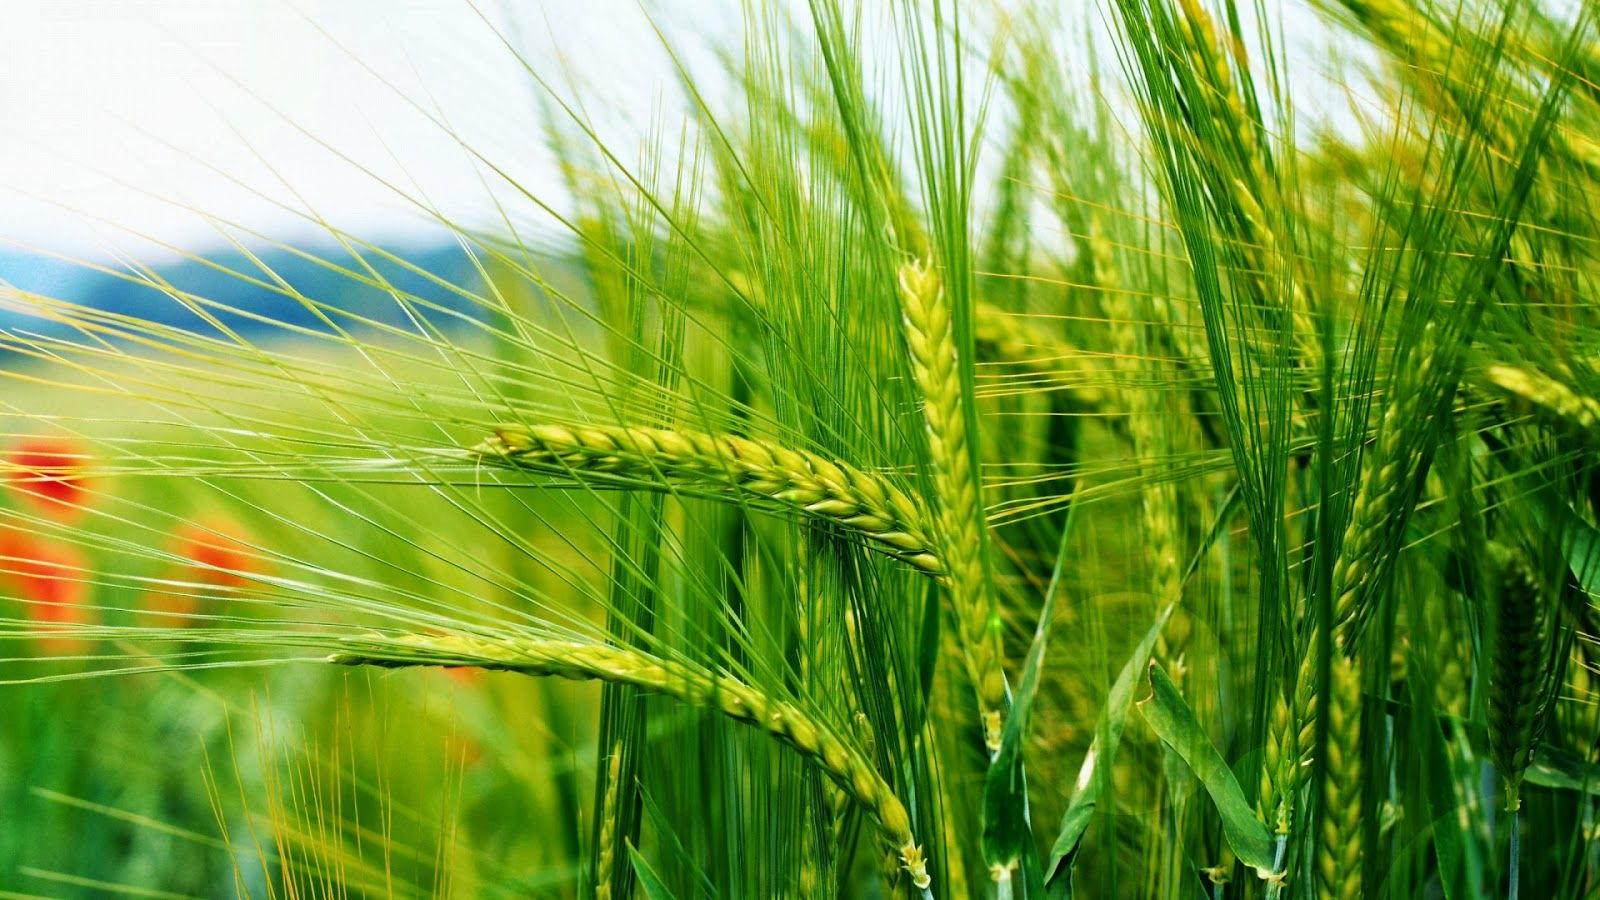 Wheat Green Nature 1080p Wallpapers Hd Green Nature Wallpaper Hd Nature Wallpapers Transparent Wallpaper